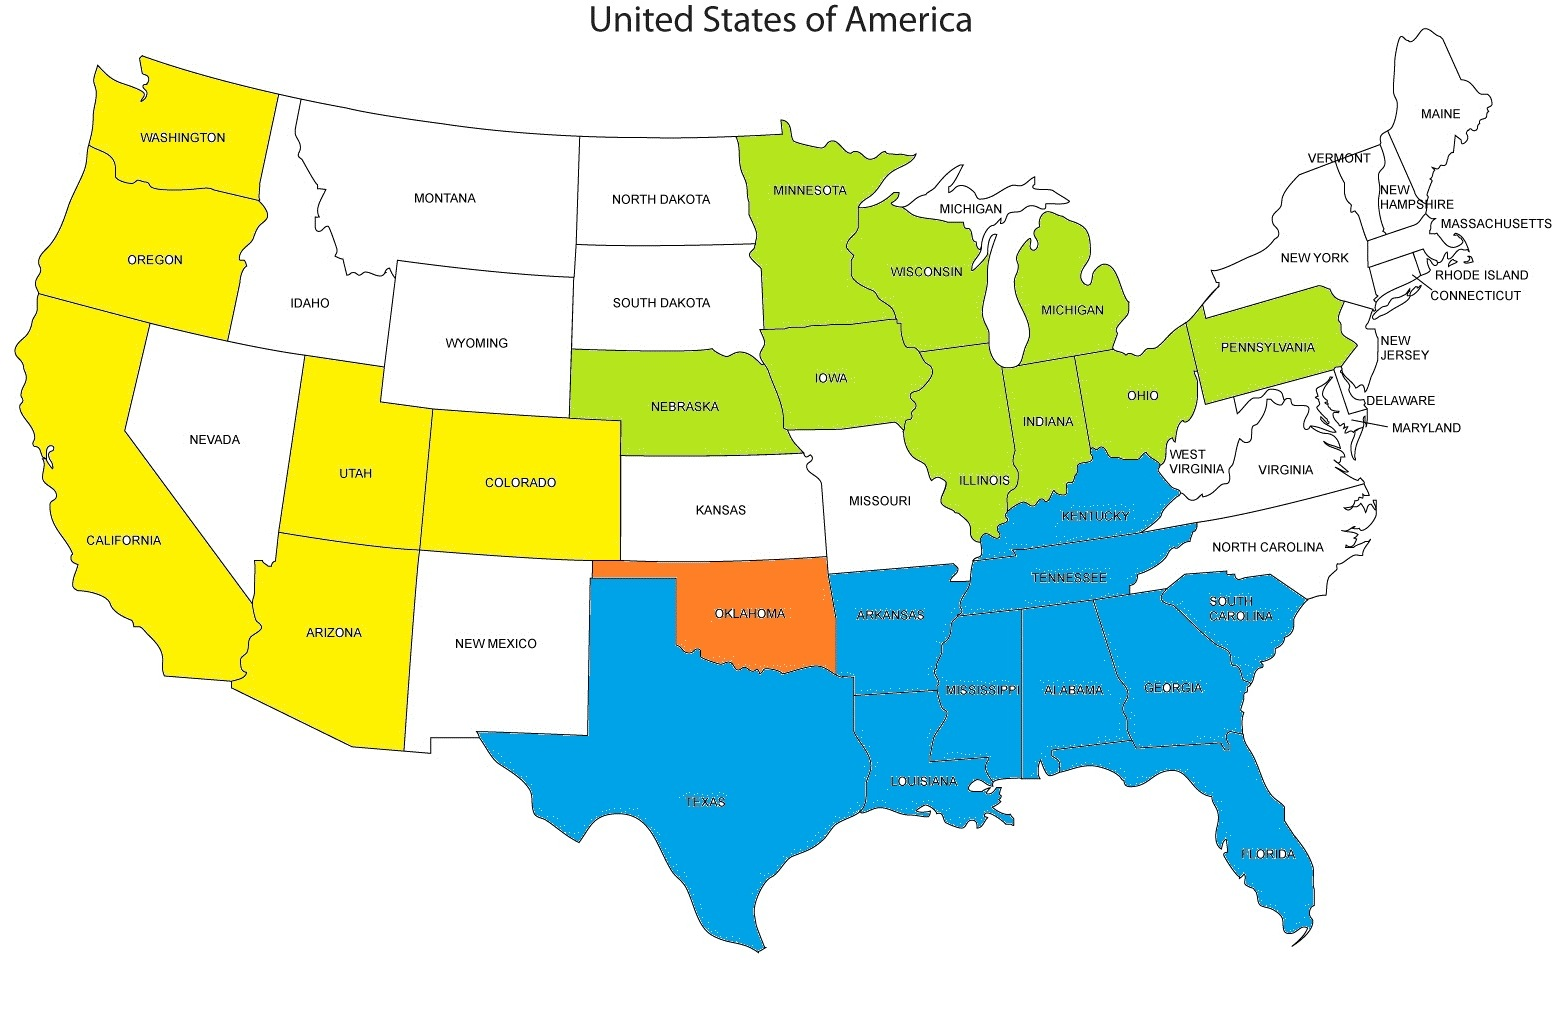 the us map below is color coded to illustrate the three largest conferences to oklahoma in blue the sec green big 10 yellow pac 12 and oklahoma is